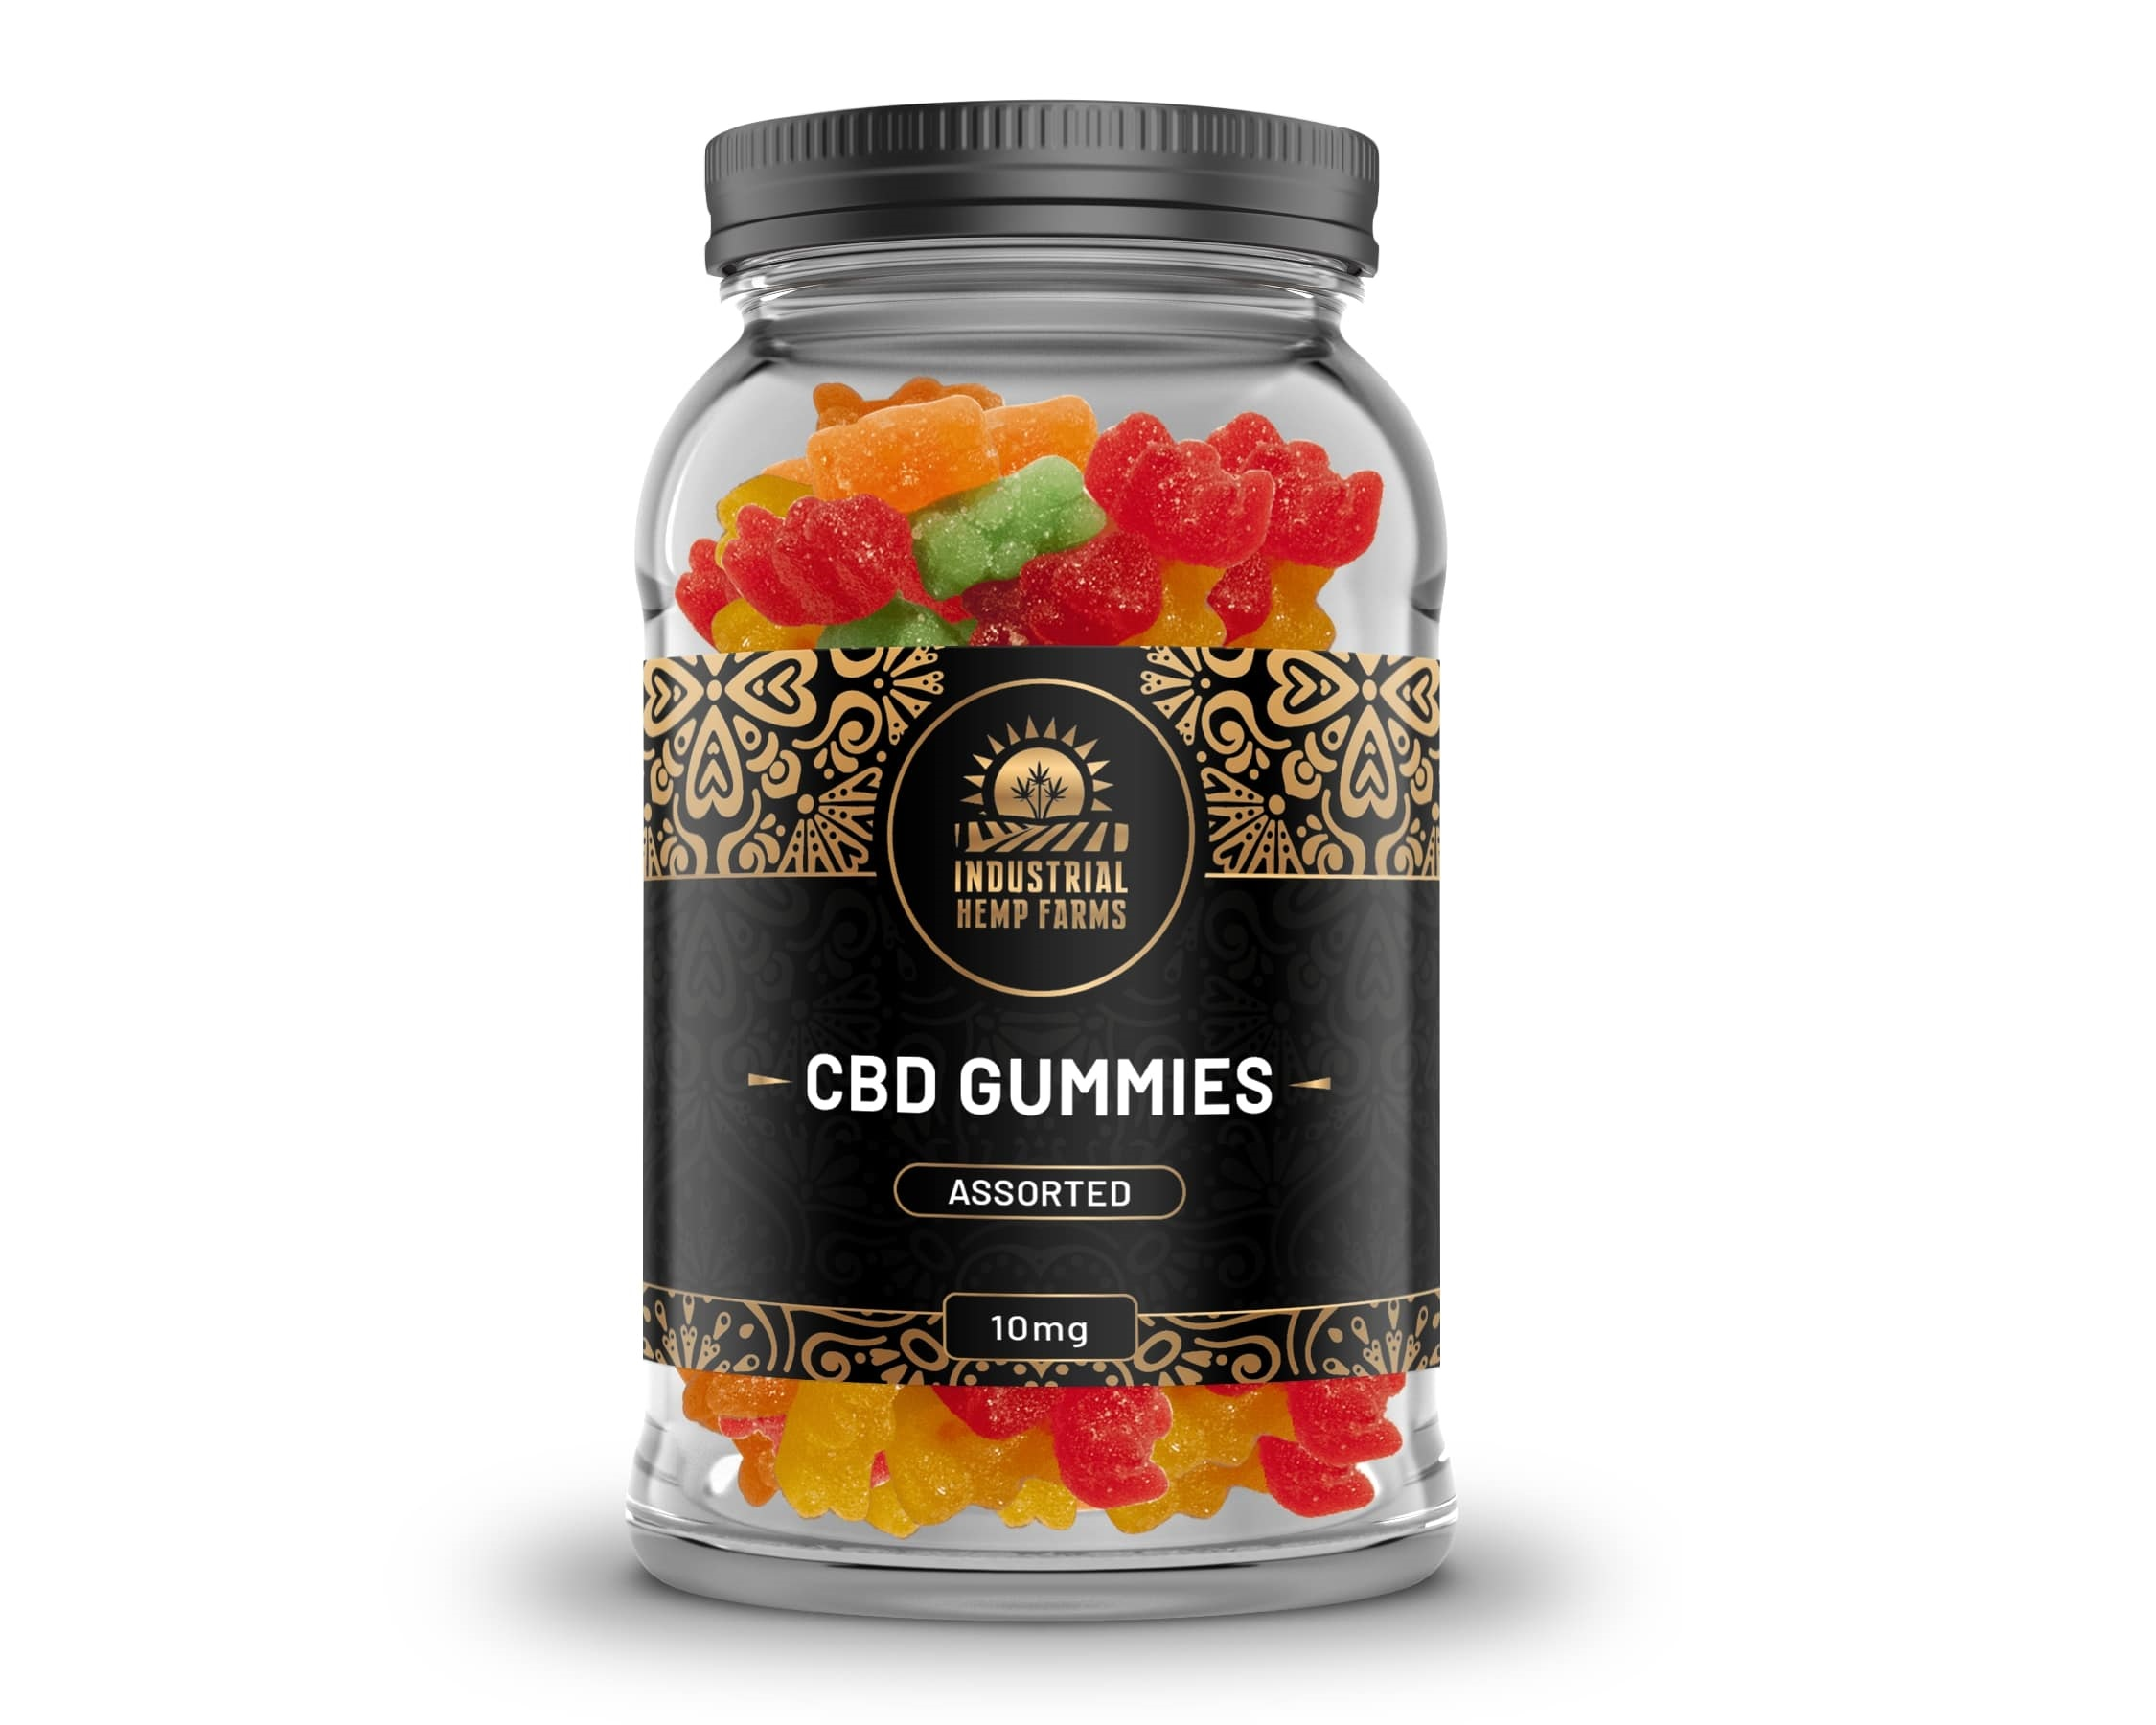 CBD Gummies for Sale Online